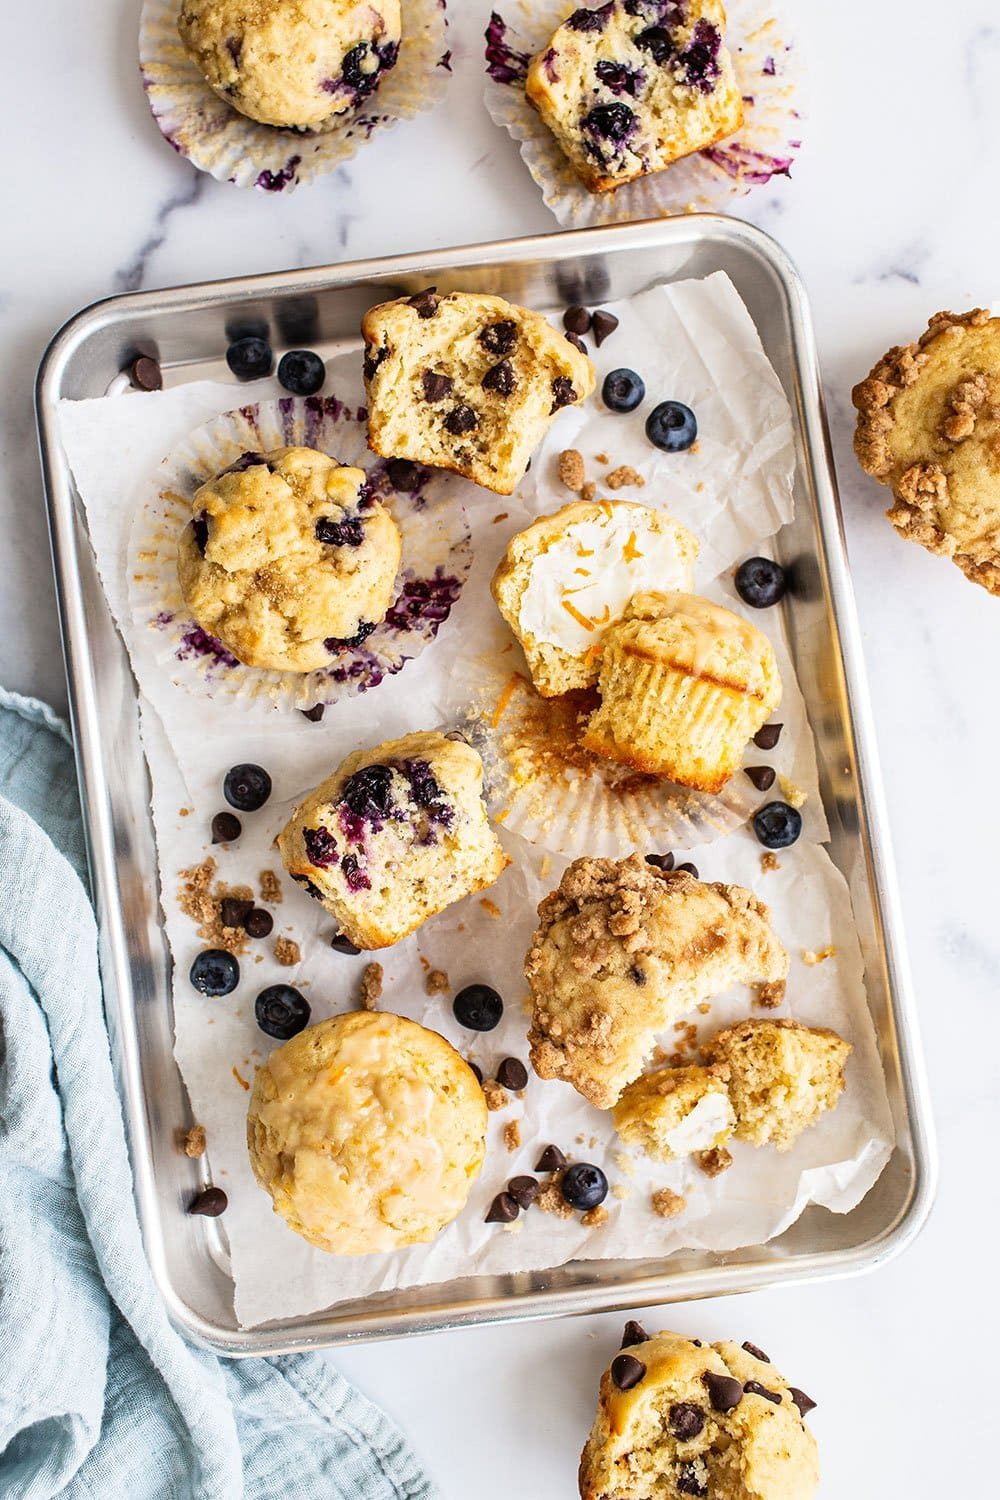 assortment of easy customizable ultimate muffins on a baking tray